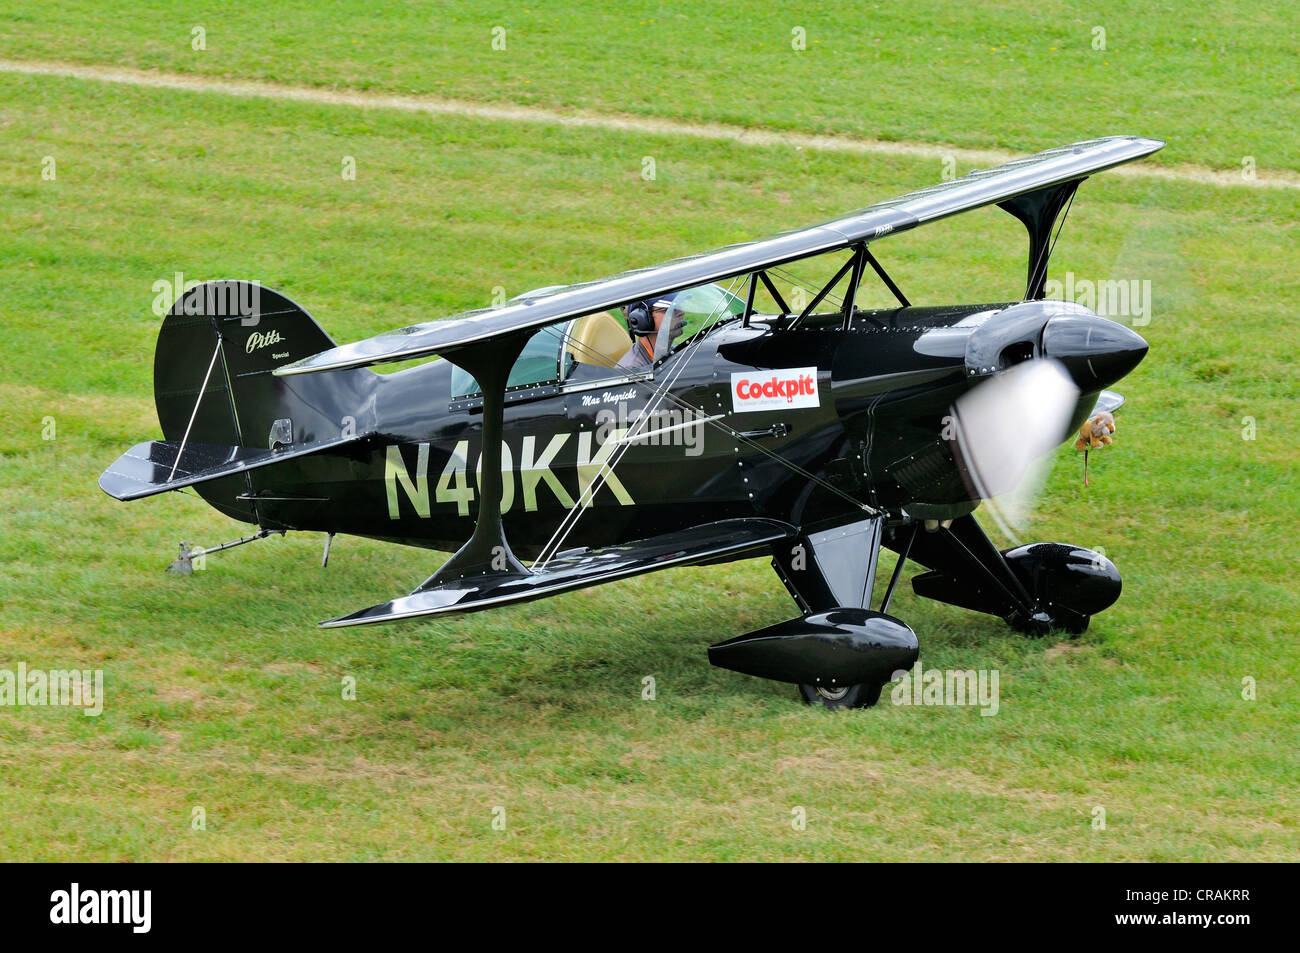 US-American Aerobatic Biplane Pitts S-1C, Europe's largest meeting of vintage aircraft at Hahnweide, Kirchheim - Stock Image